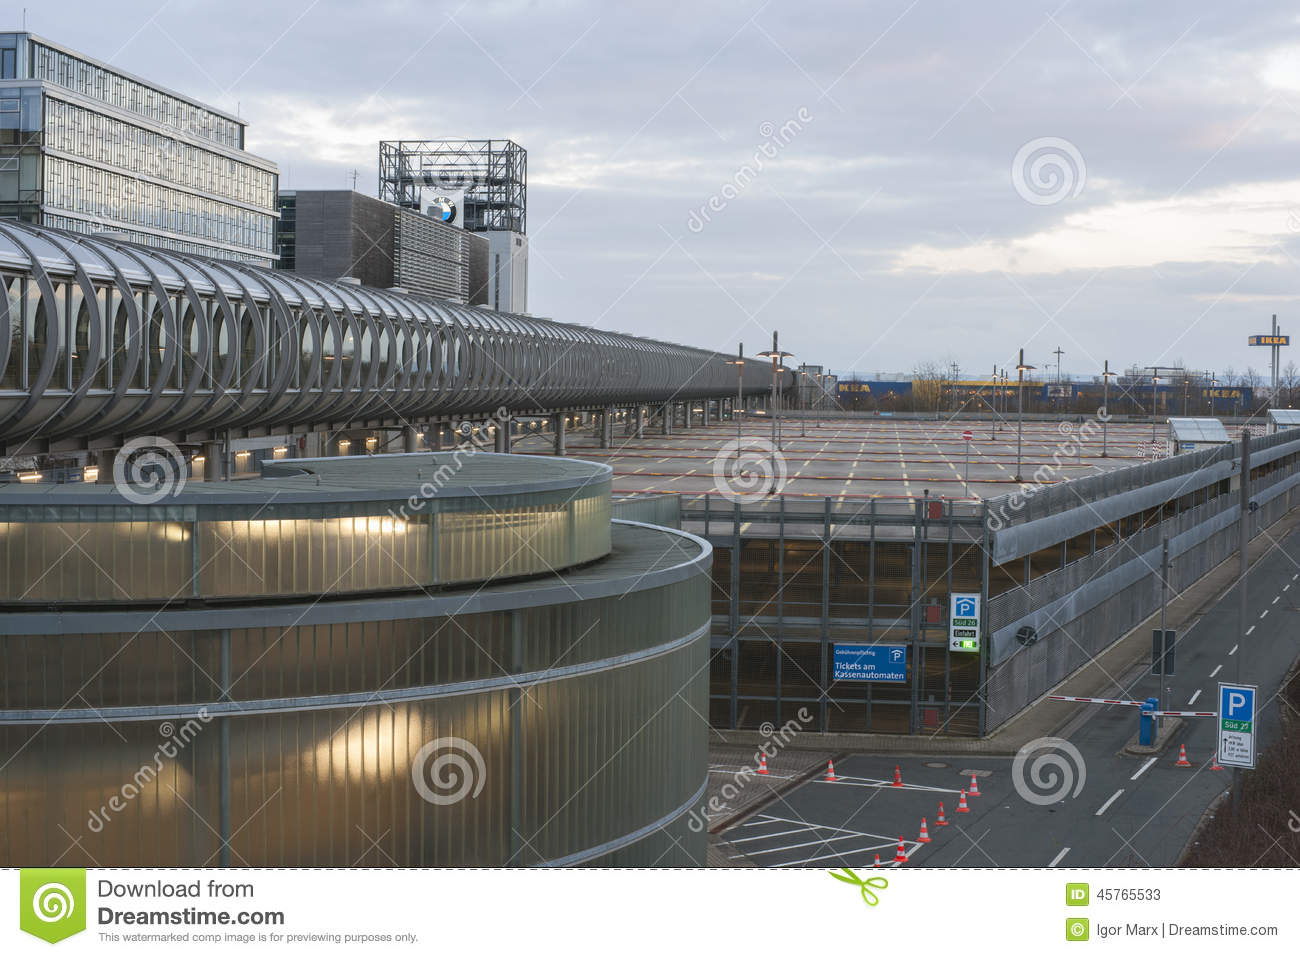 Expo Plaza Hannover Expo Plaza On Hannover Fairground Editorial Stock Photo Image Of